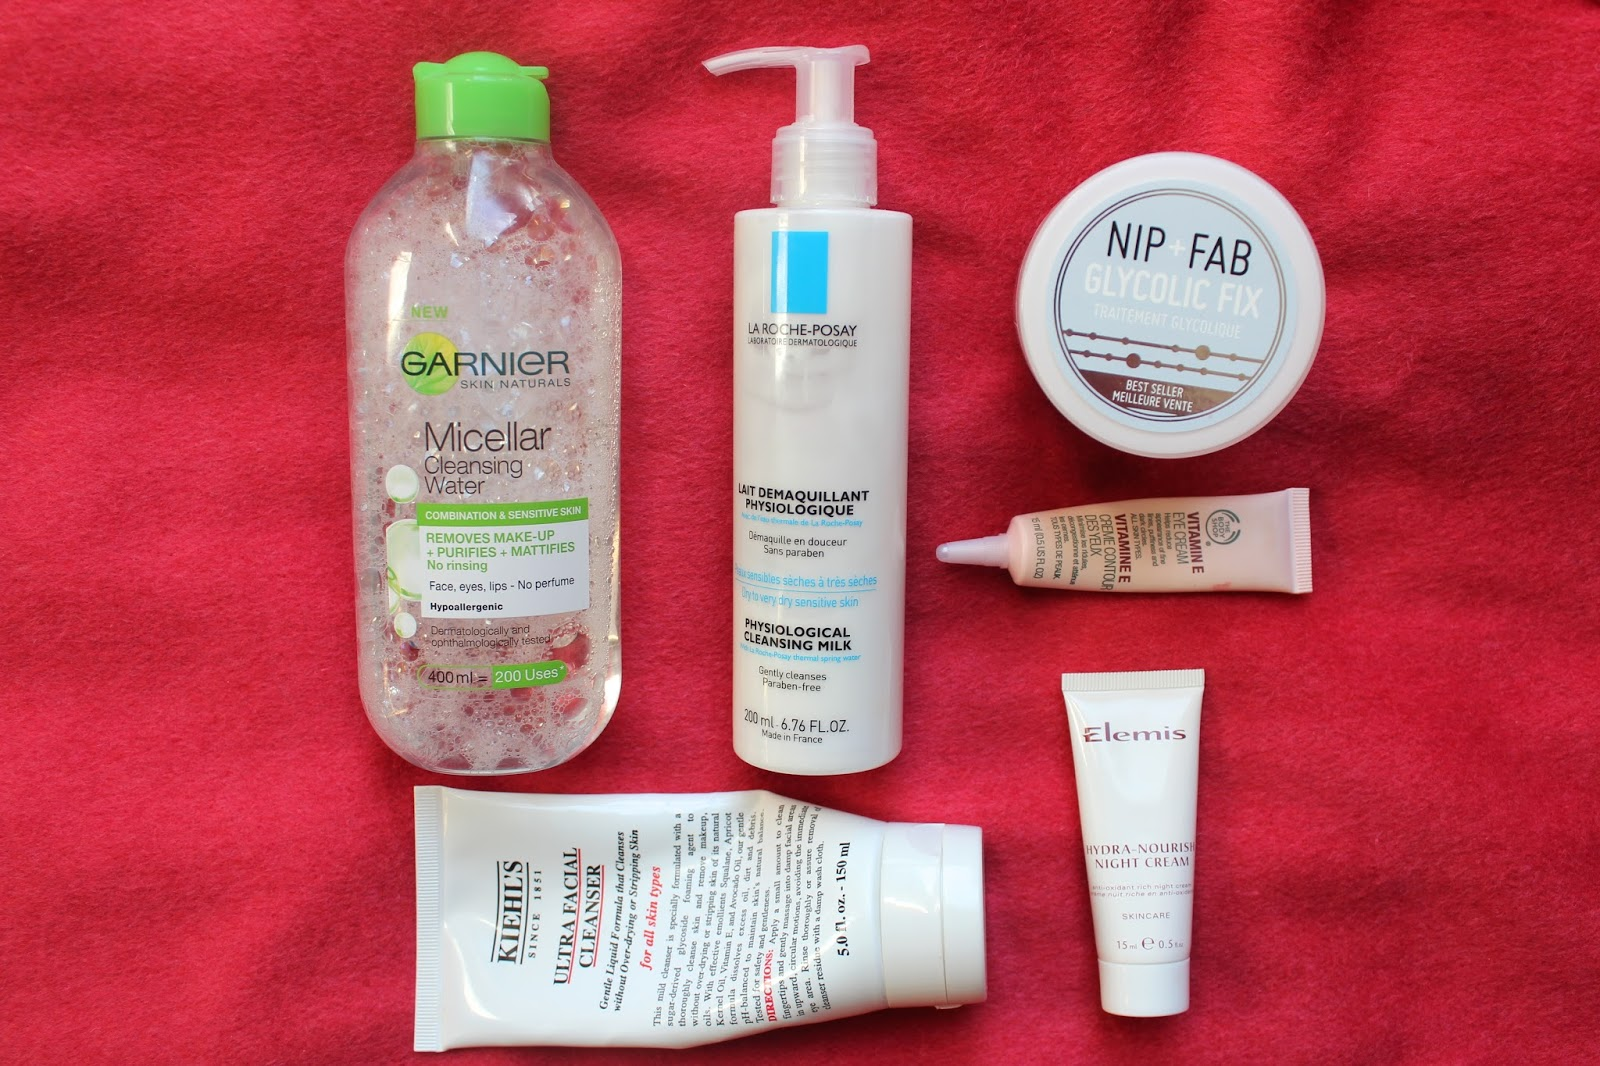 beauty bloggers skincare bblogger bbloggers garnier micellar water la roche posay physiological cleansing milk cleanser nip and fav glycolic fix pads faicial kiehl's ultra facial cleanser elemis ultra nourishing night cream the body shop vitamin e eye cream instagram kirstie pickering